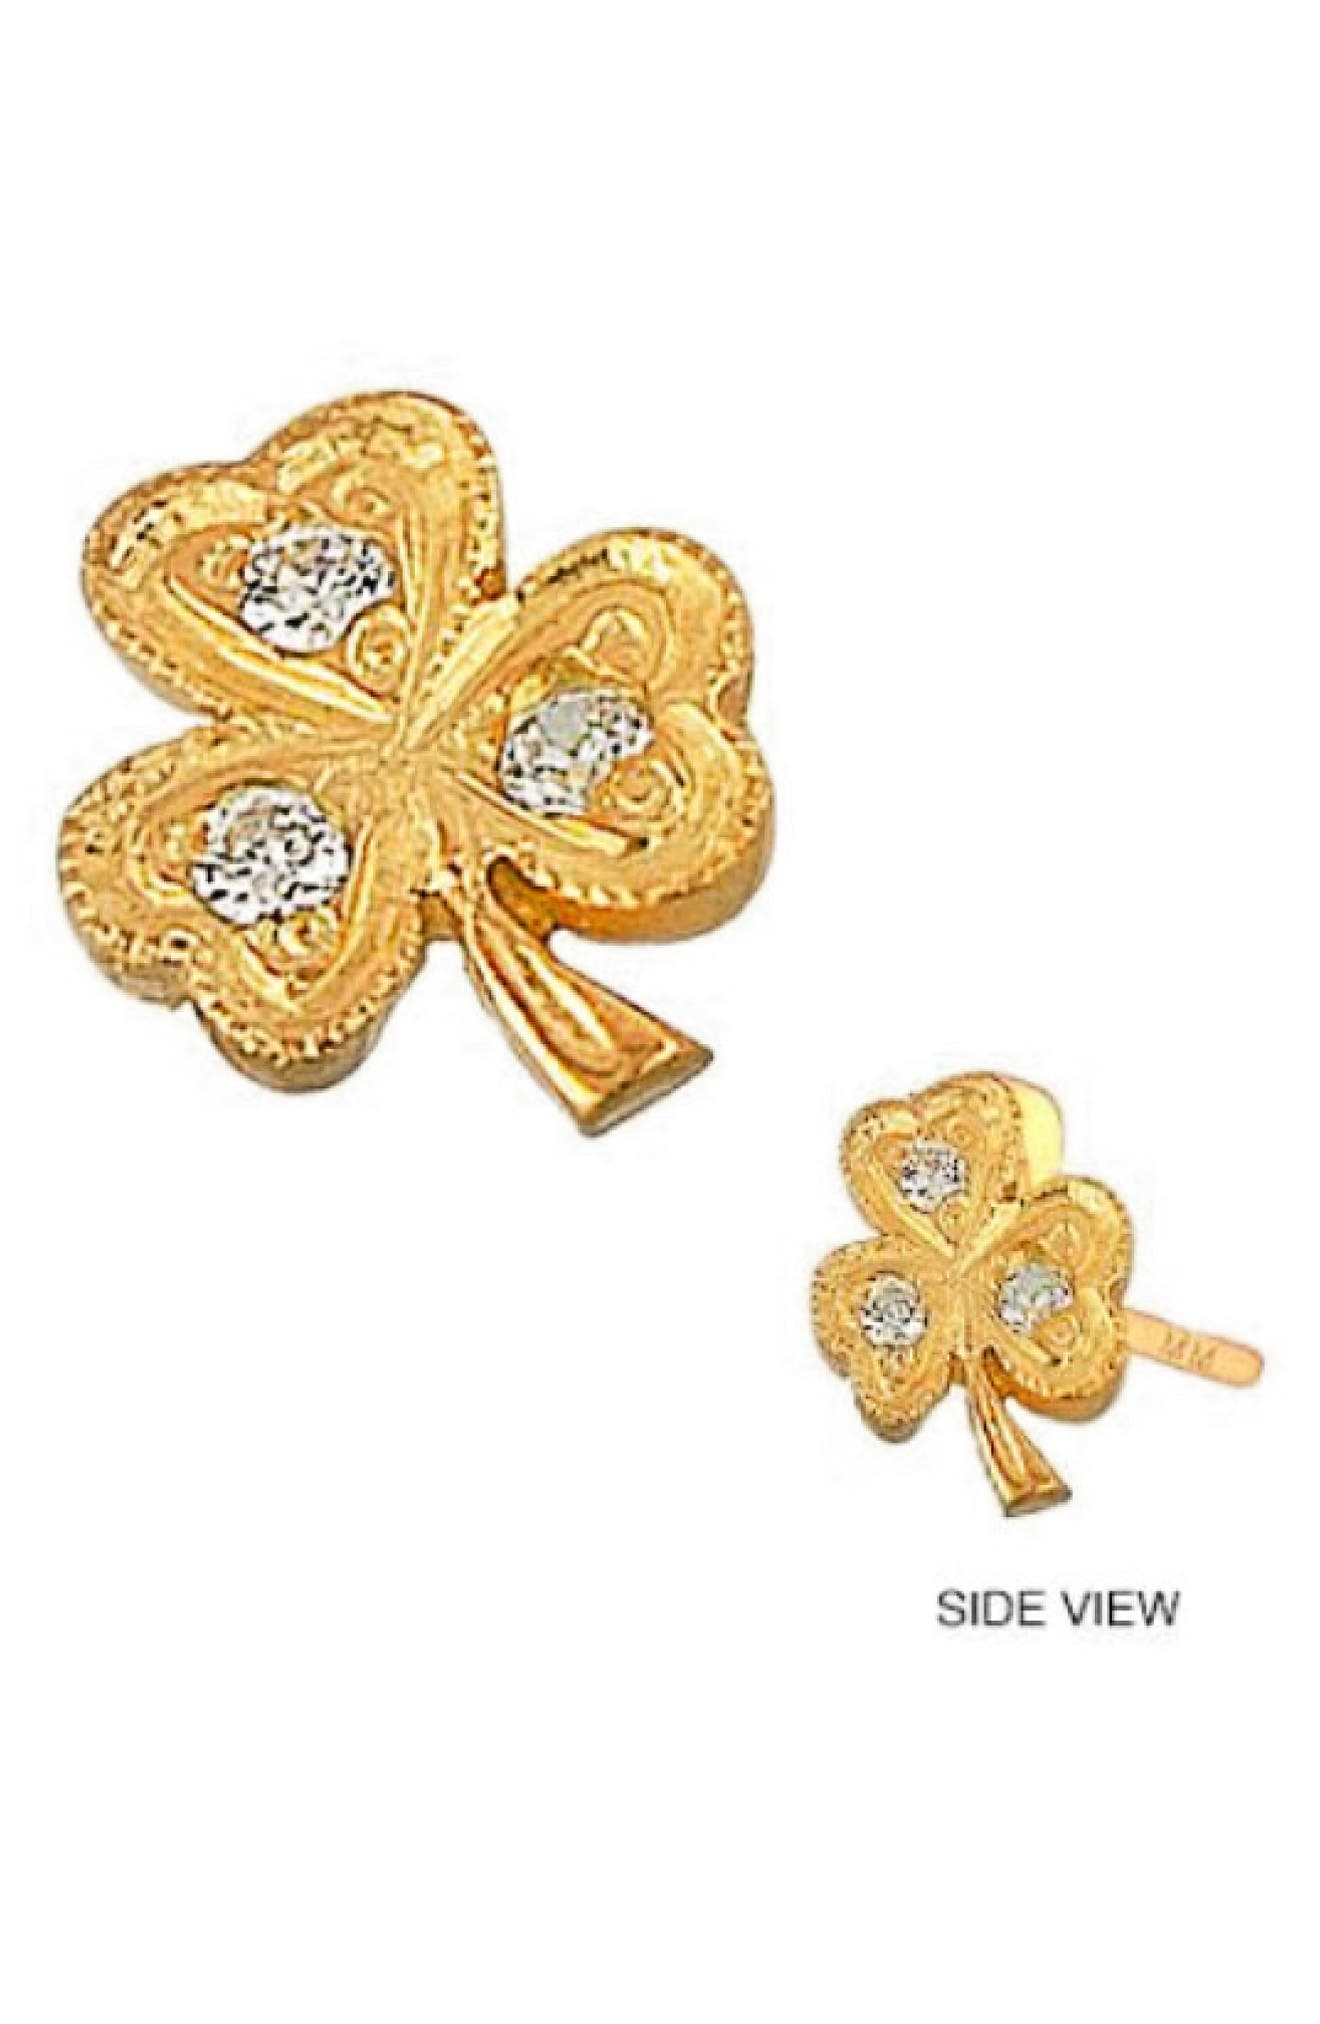 A clover-shaped earring in 14-karat gold is alight with sparkling diamonds. Style Name: Mini Mini Jewels Diamond Icon Clover Earring. Style Number: 5770488. Available in stores.